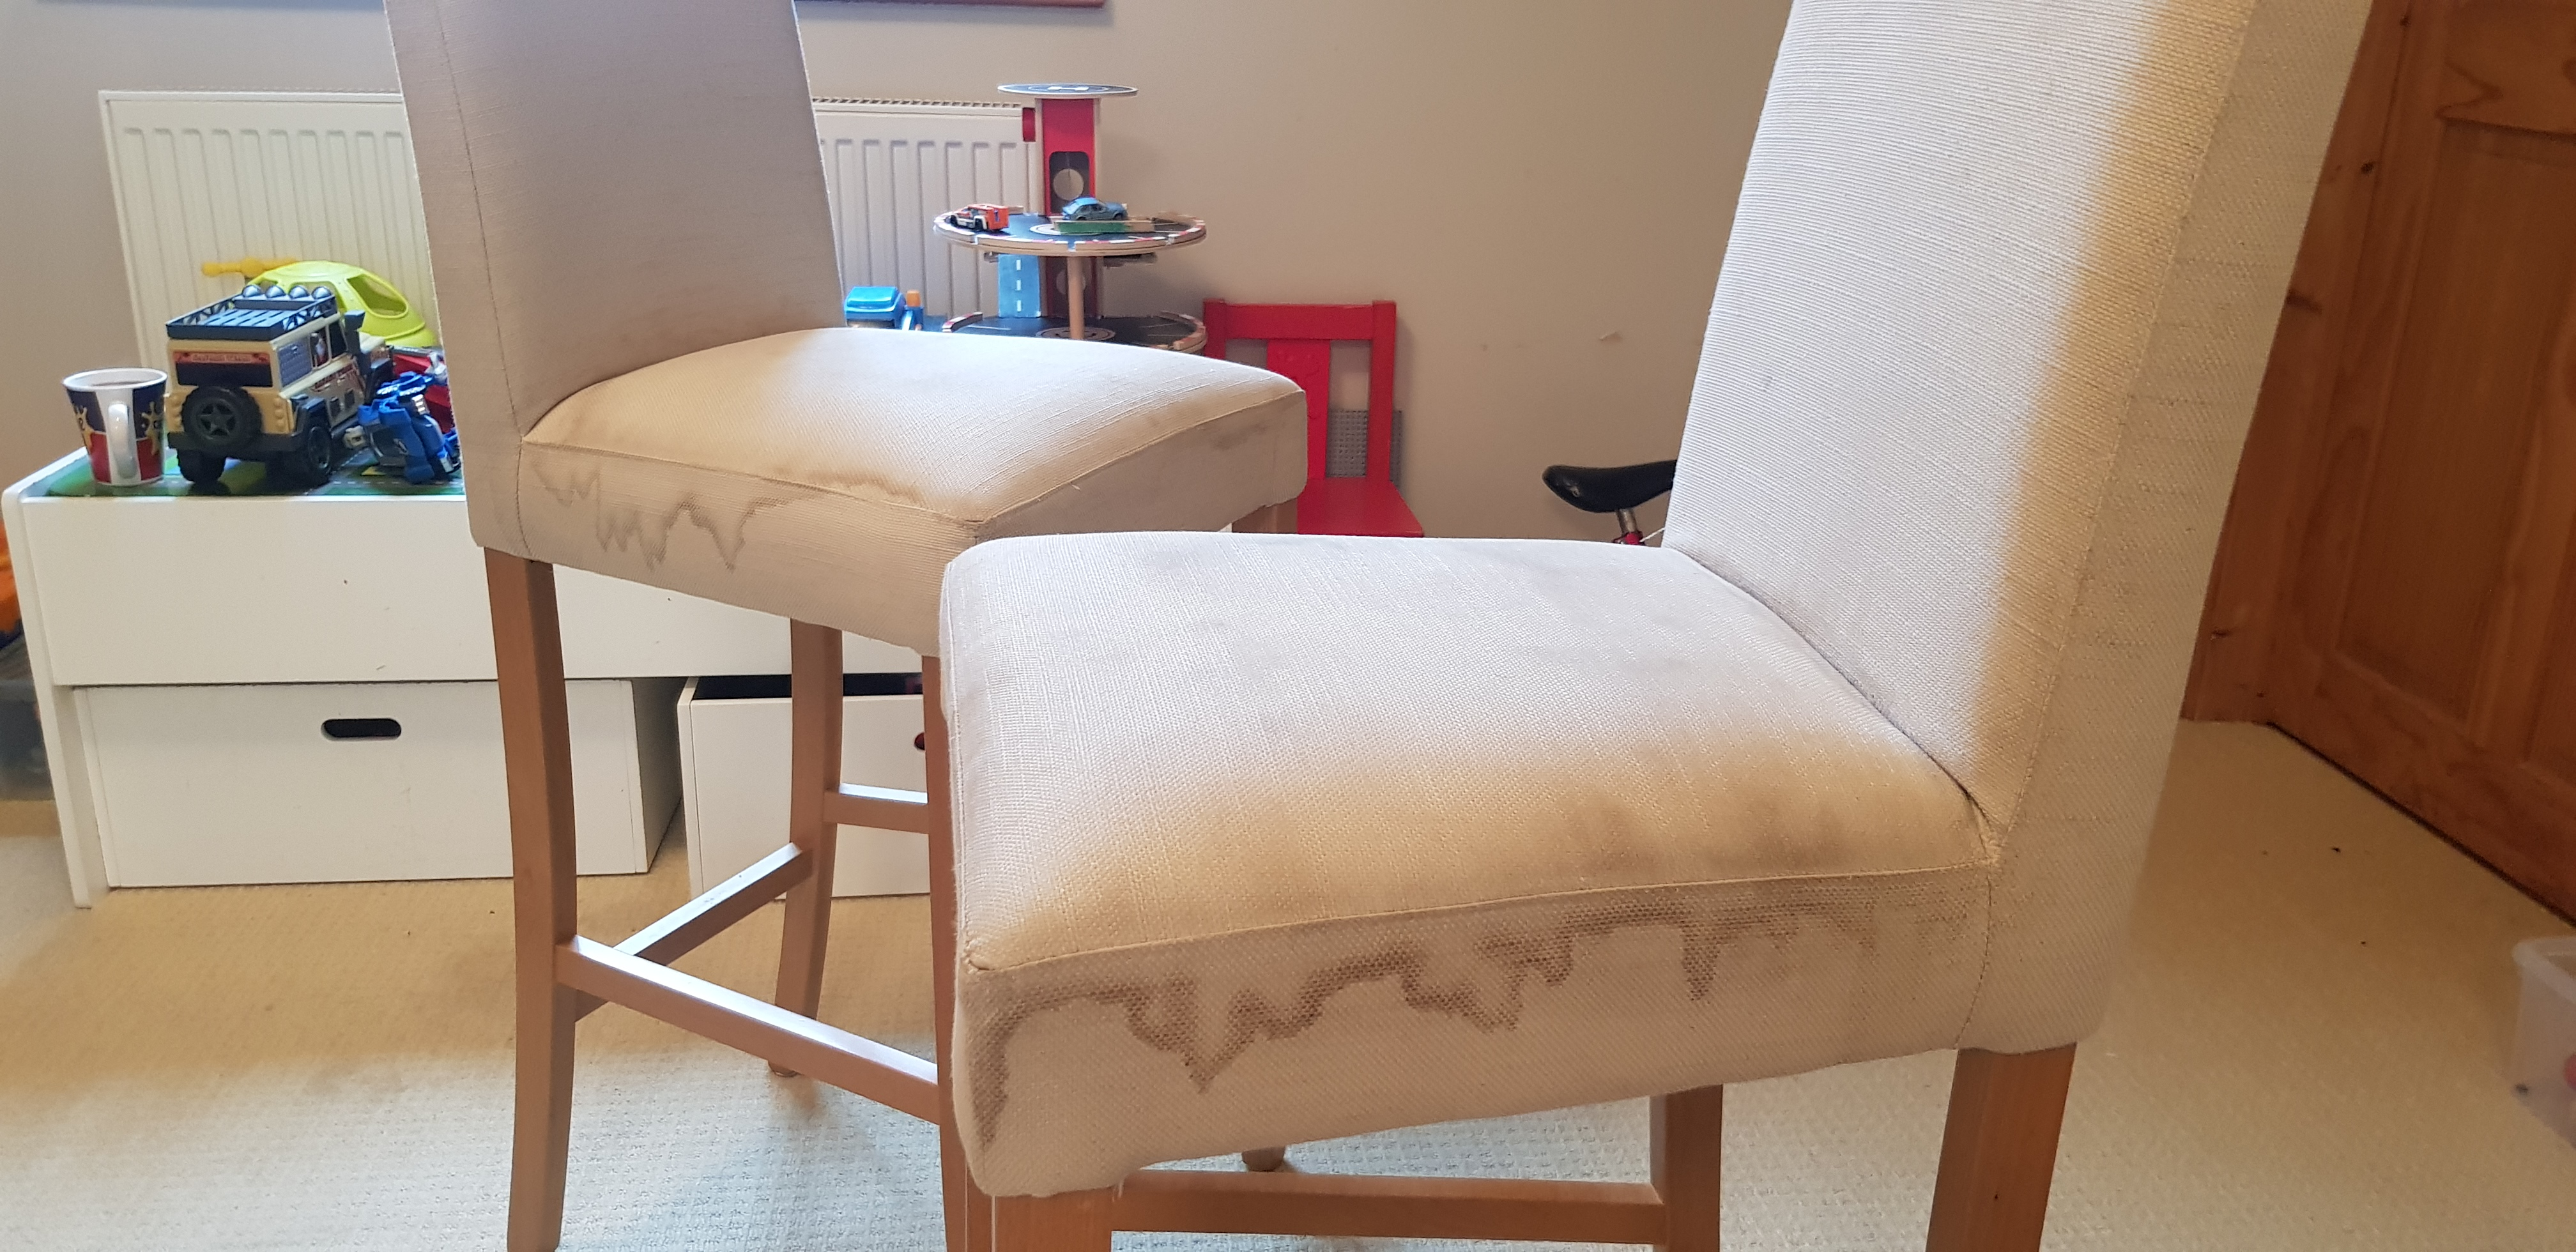 DIY chair cleaning